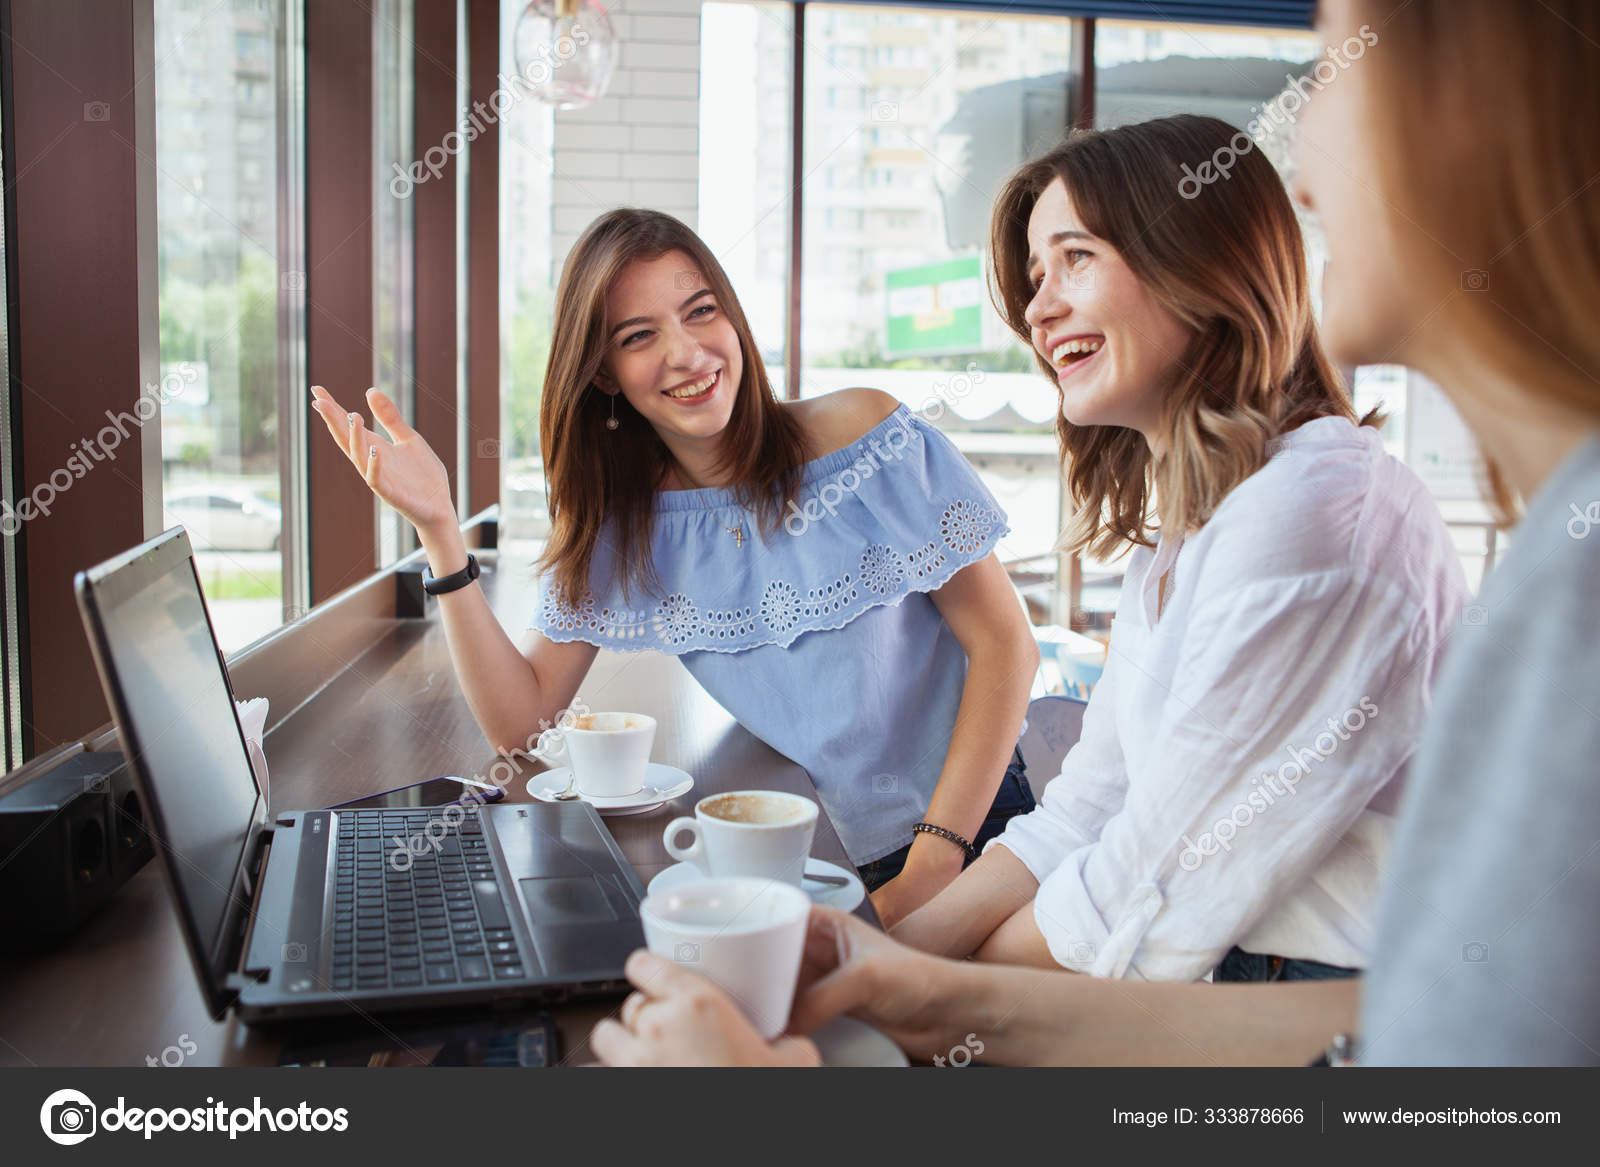 Beautiful Female Friends Enjoying Morning Coffee At The Cafe Tog Stock Photo C Bjjenzor Gmail Com 333878666